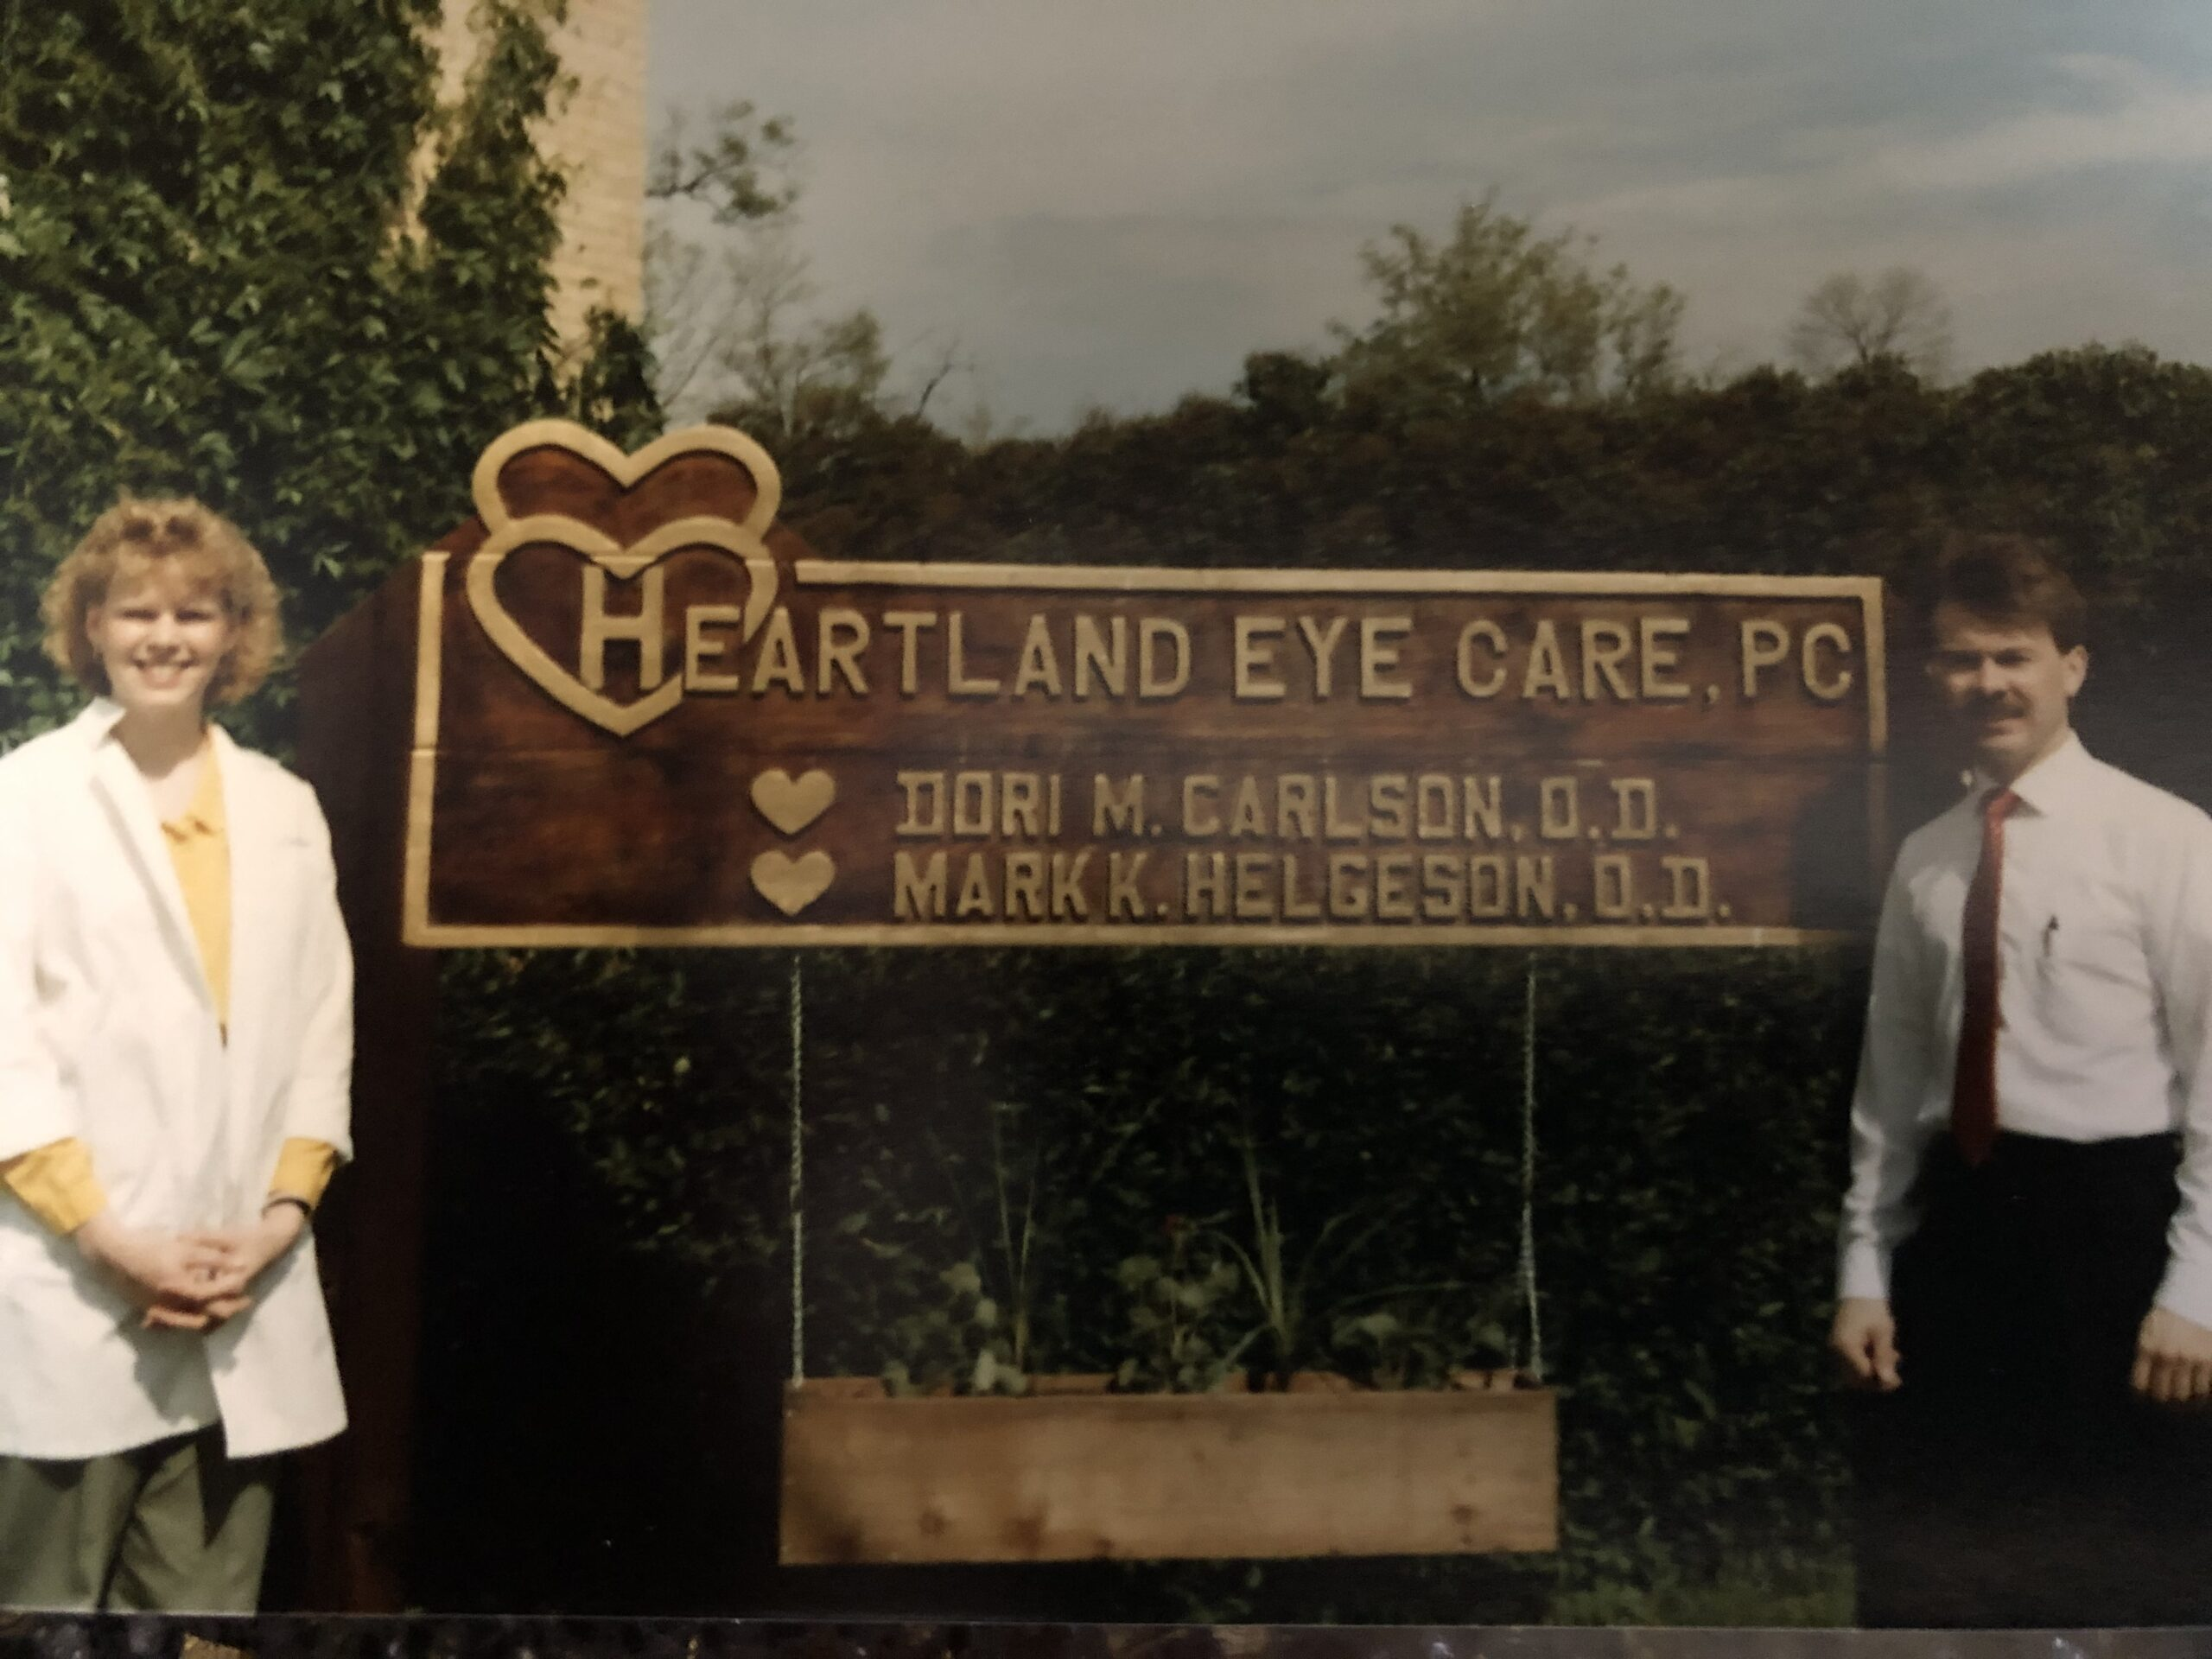 Heartland Eye Care in Park River, ND